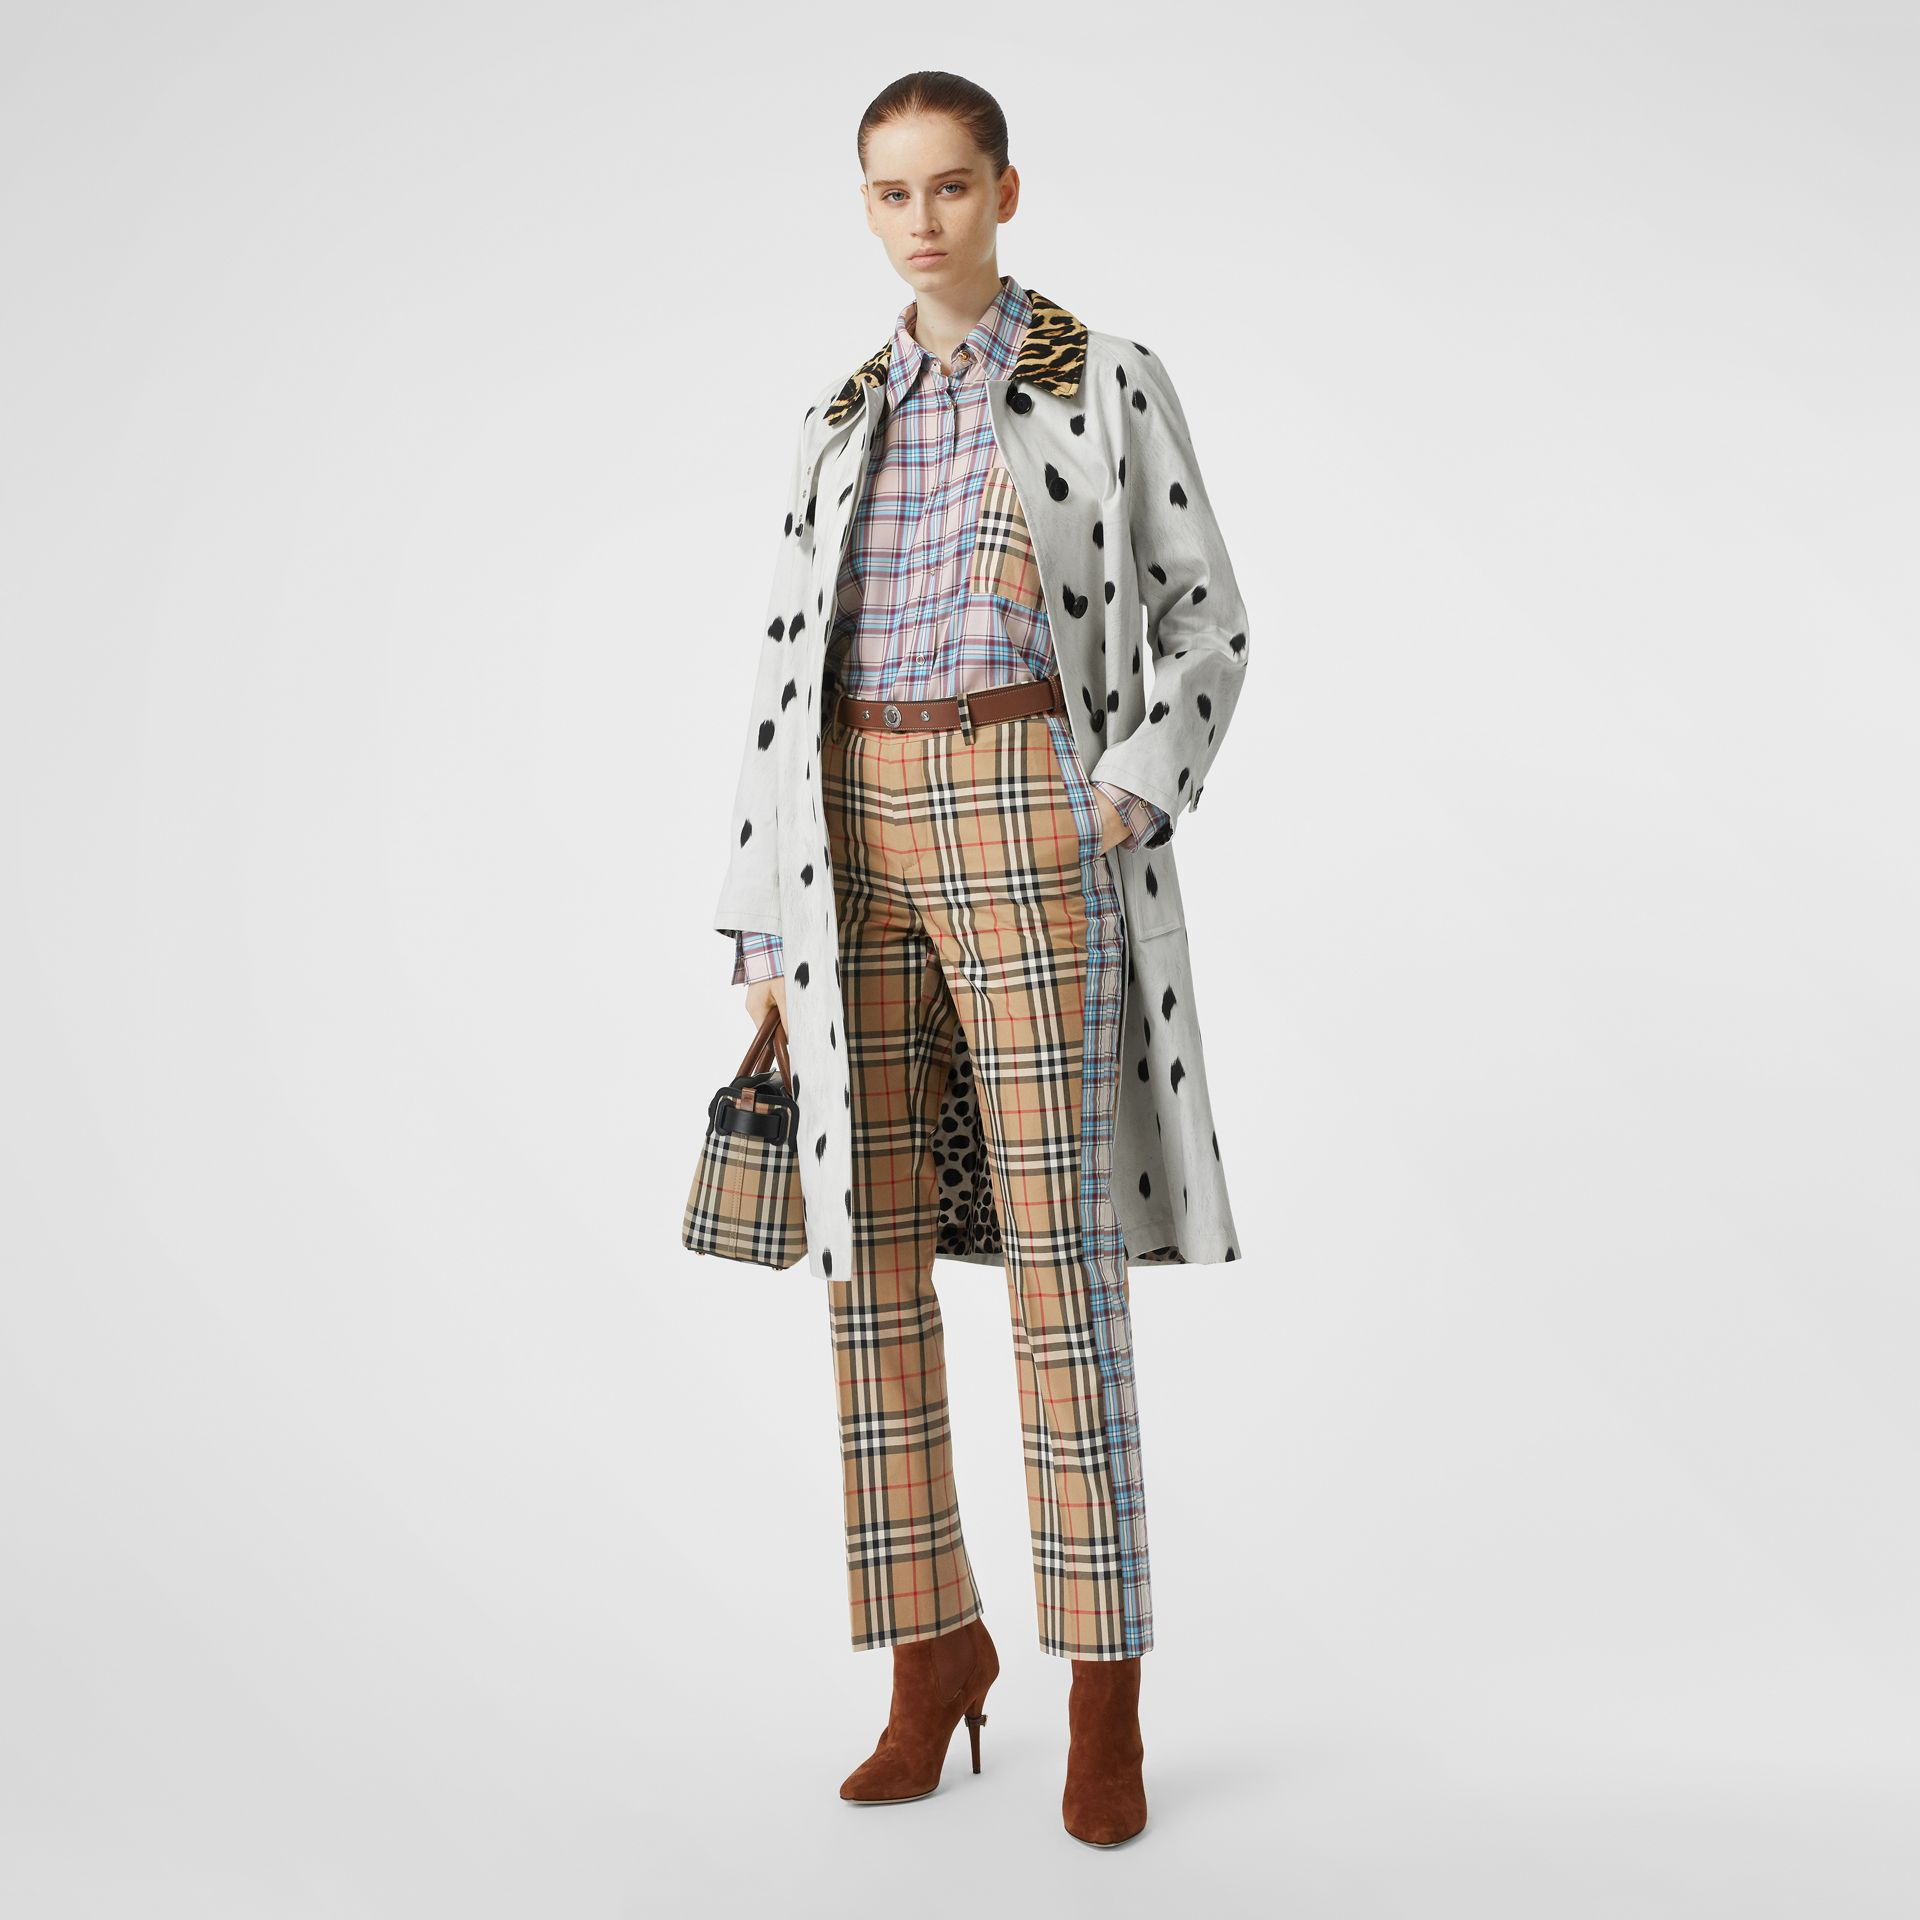 Pantalon droit en coton check (Beige D'archive) - Femme | Burberry - photo de la galerie 0